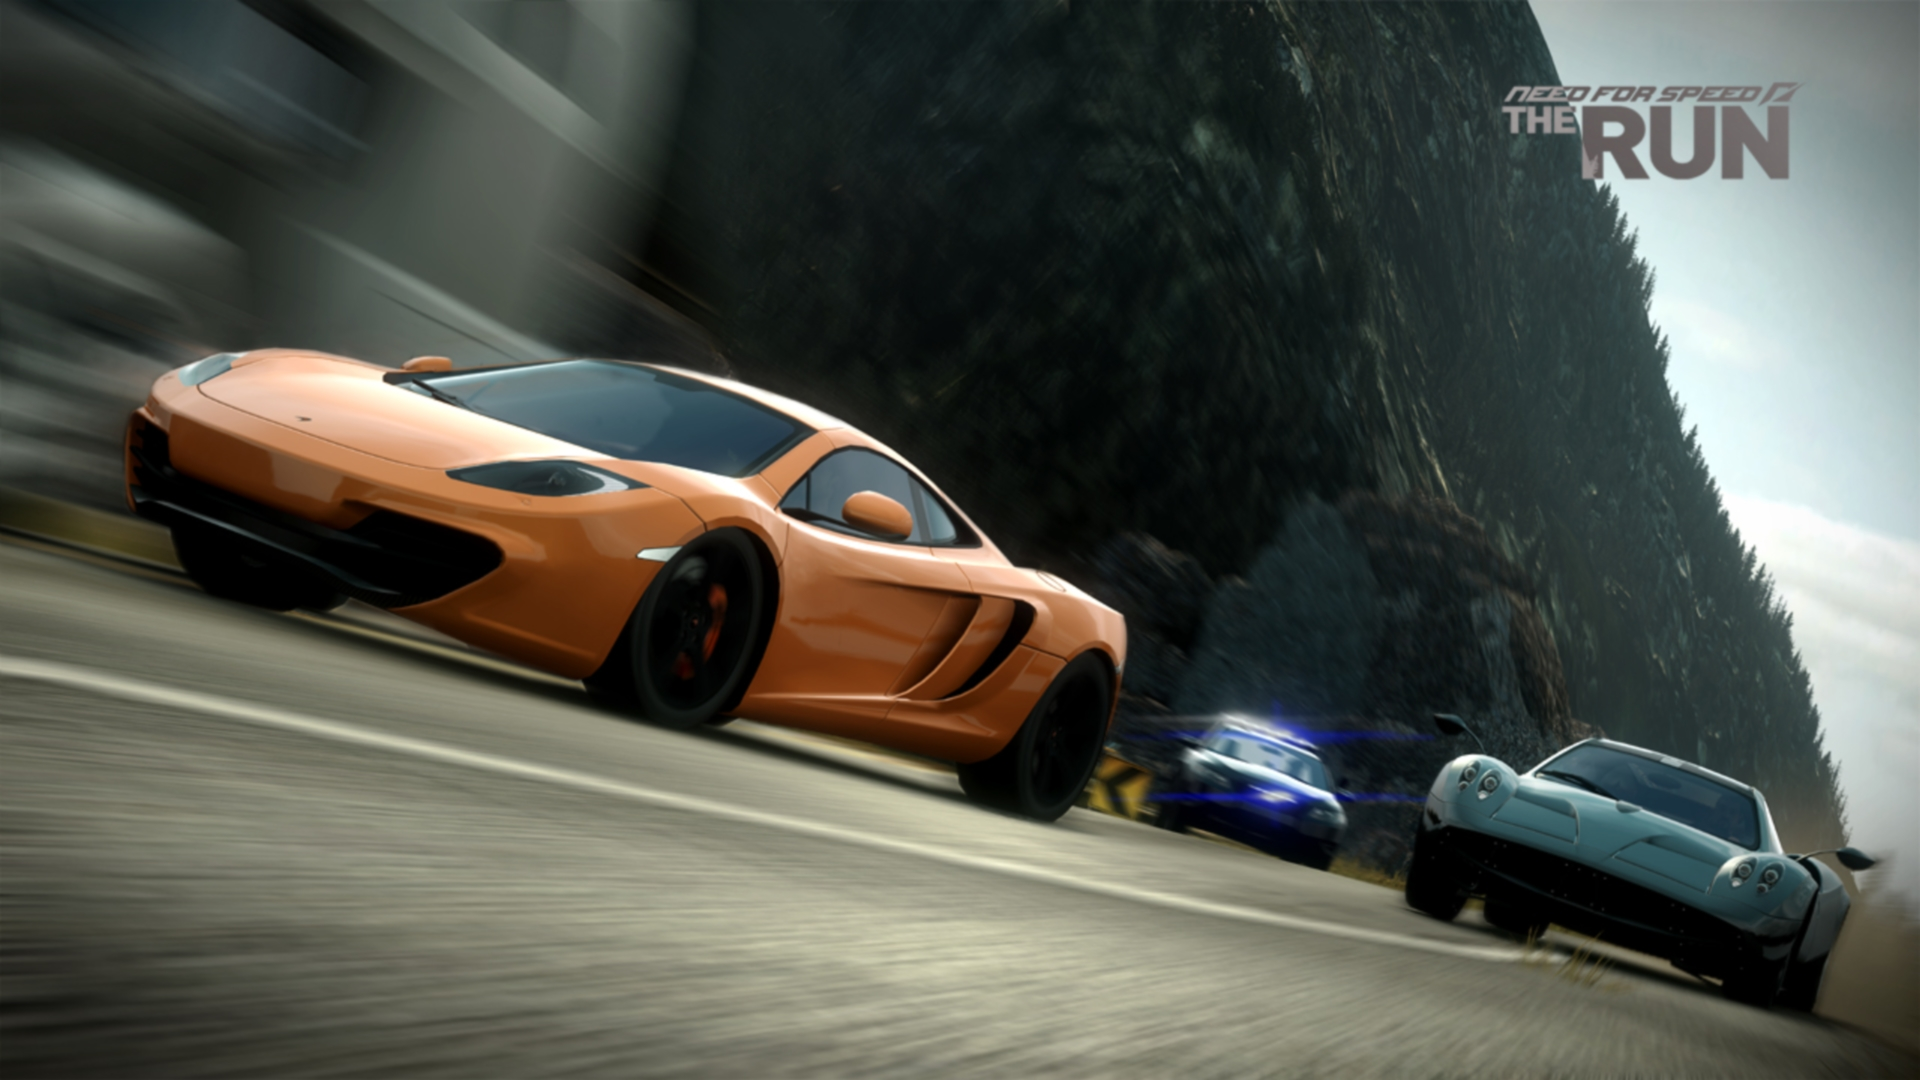 NFS: The Run HD wallpaper 010